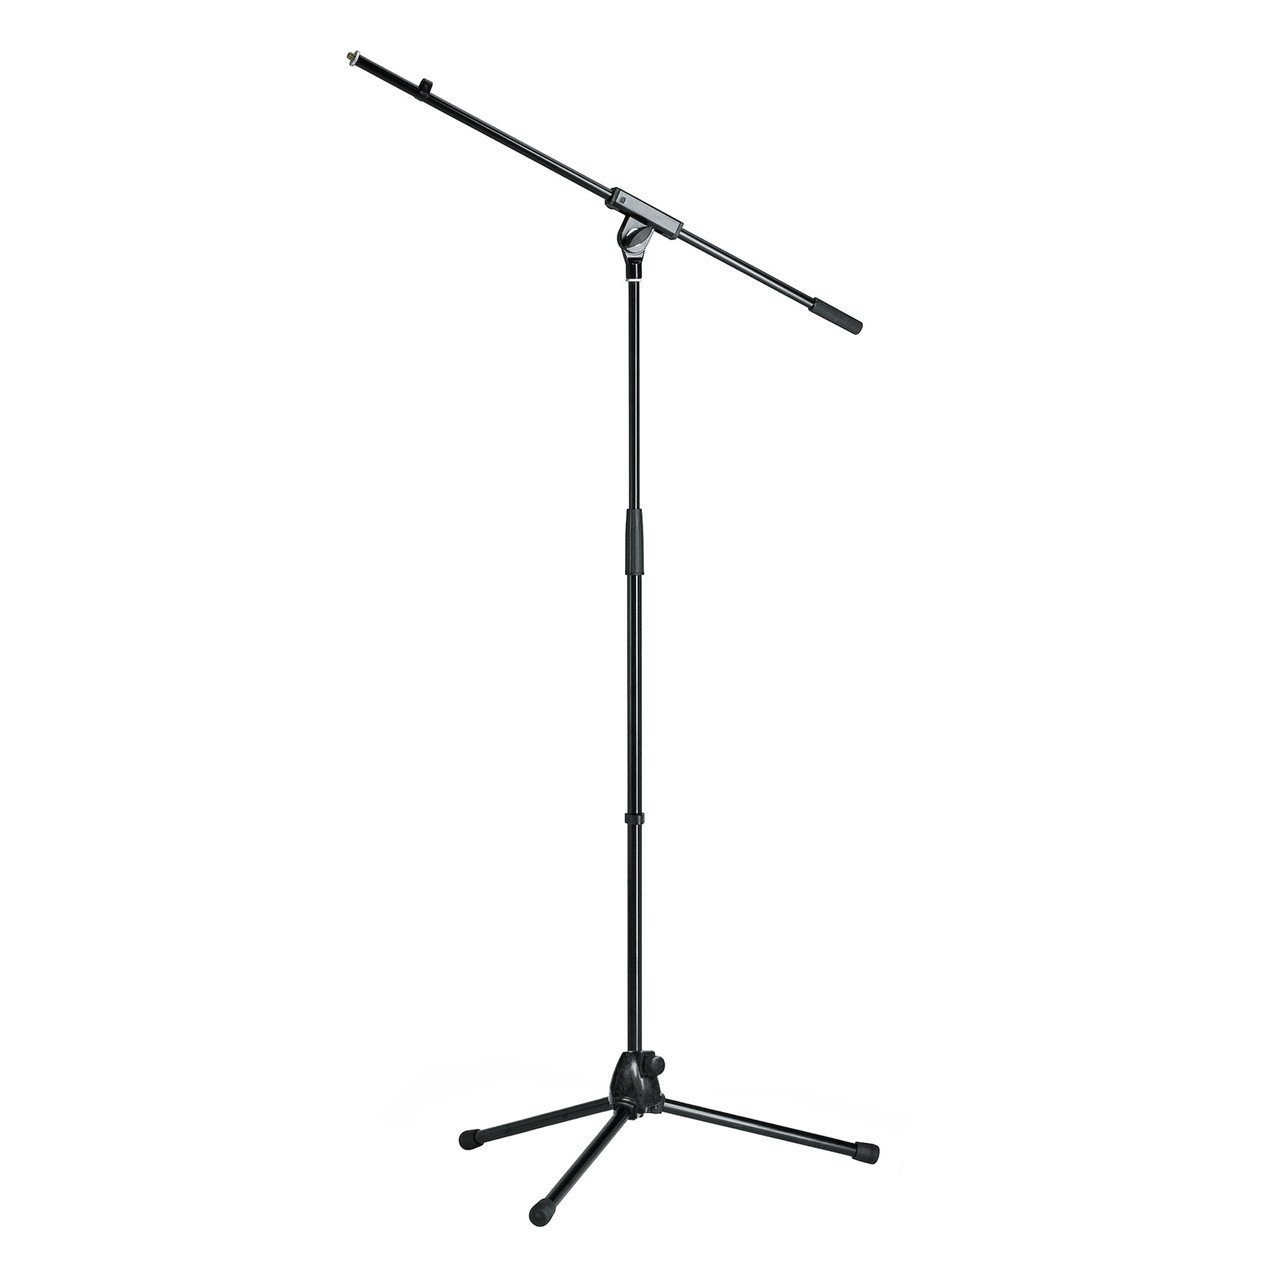 Microphone Accessories - Konig & Meyer 21070 Microphone Stand